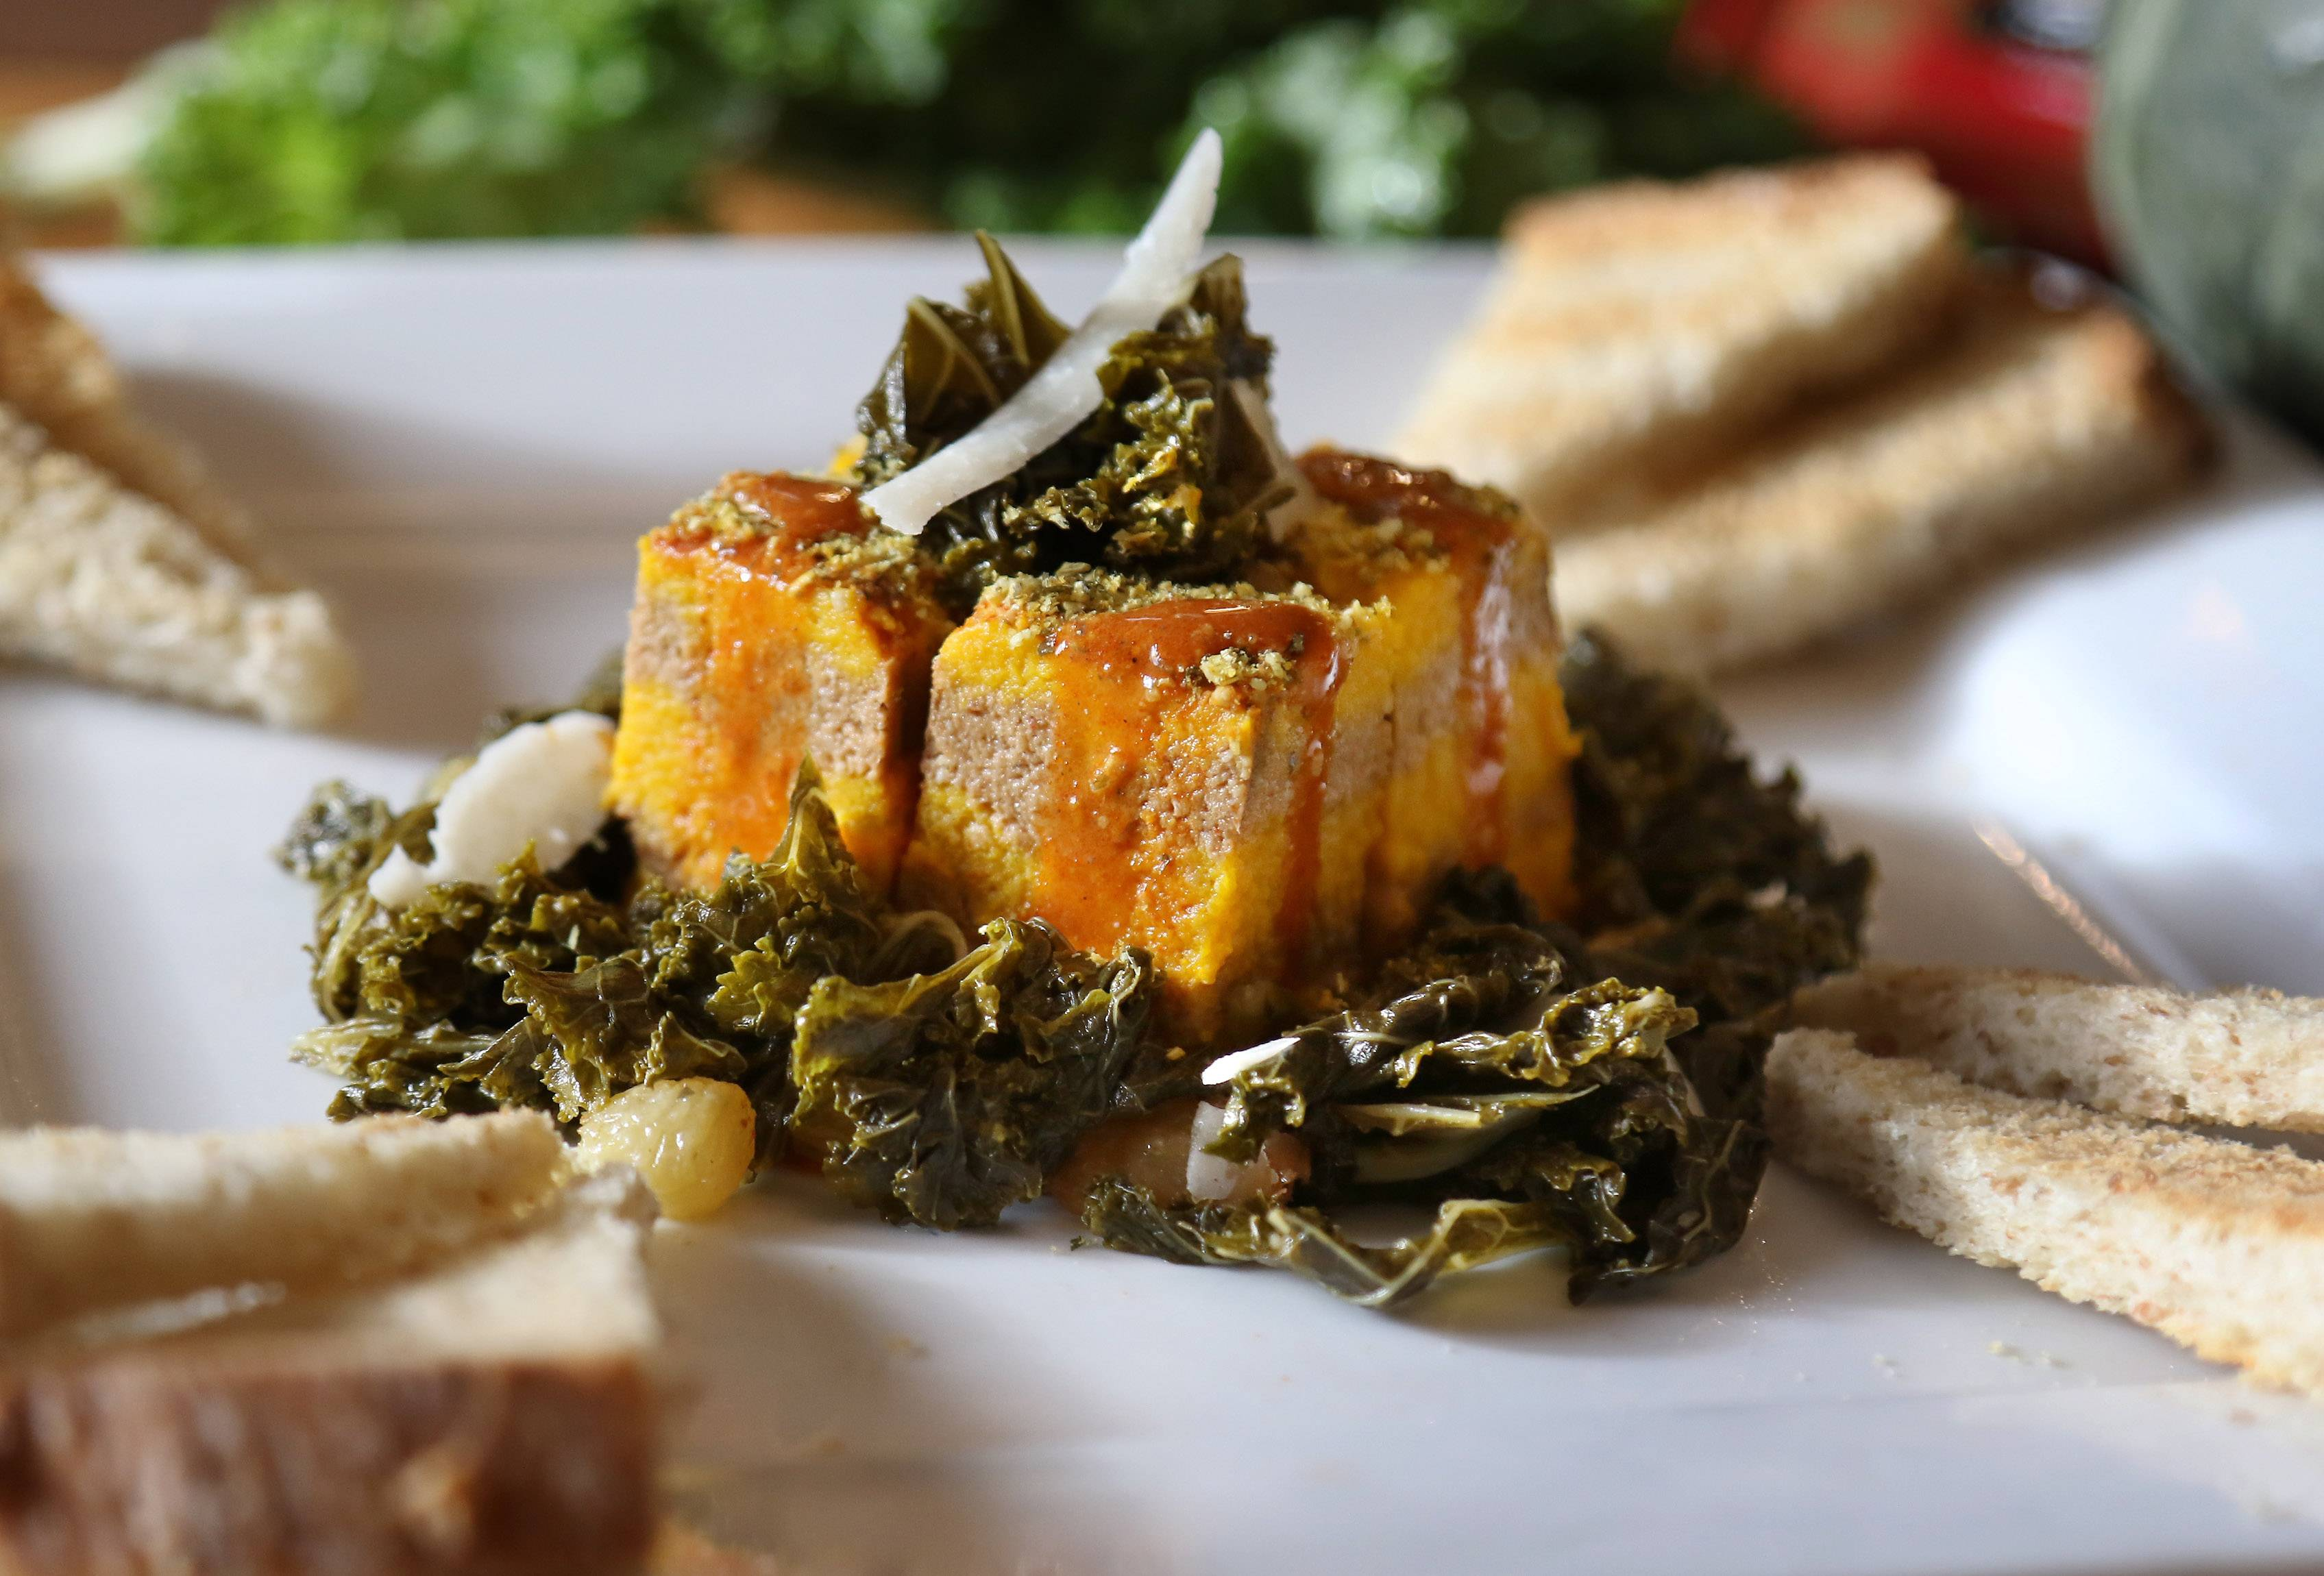 Joe Wachter's Timbale Of Roasted Squash And Sardine Mousseline With Quick-Pickled Kale